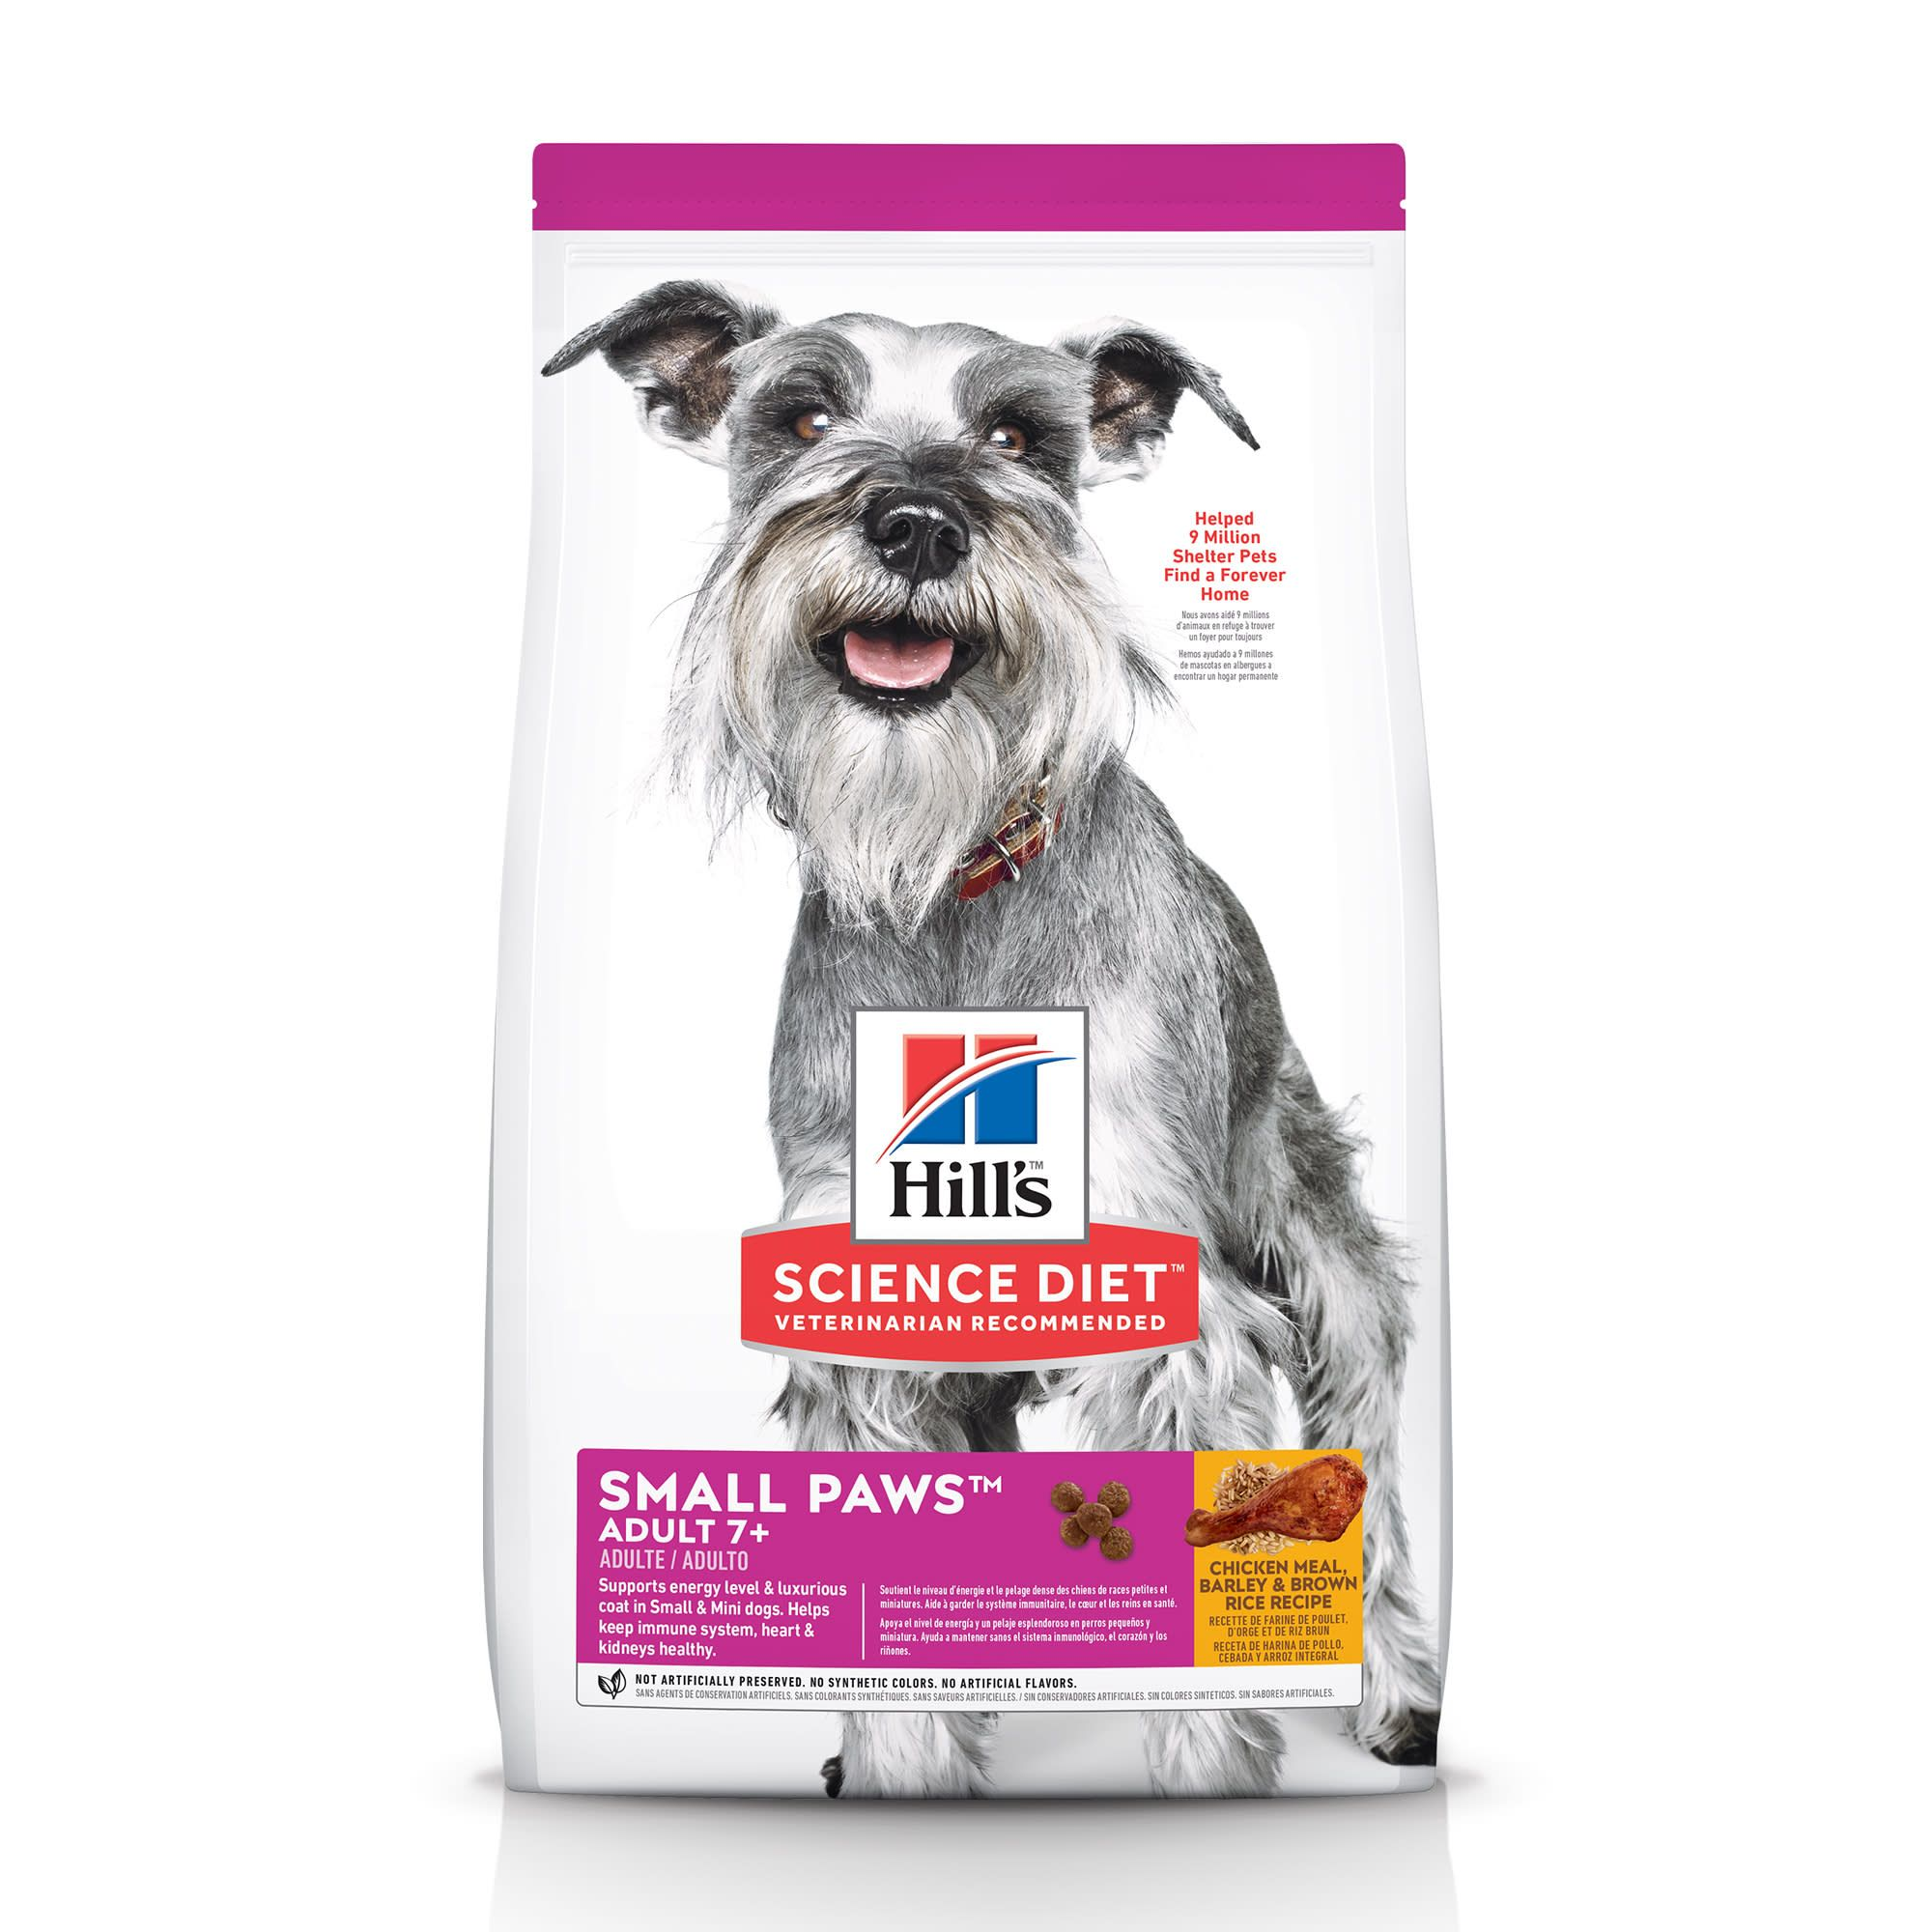 Hill S Science Diet Adult 7 Small Paws Chicken Meal Barley